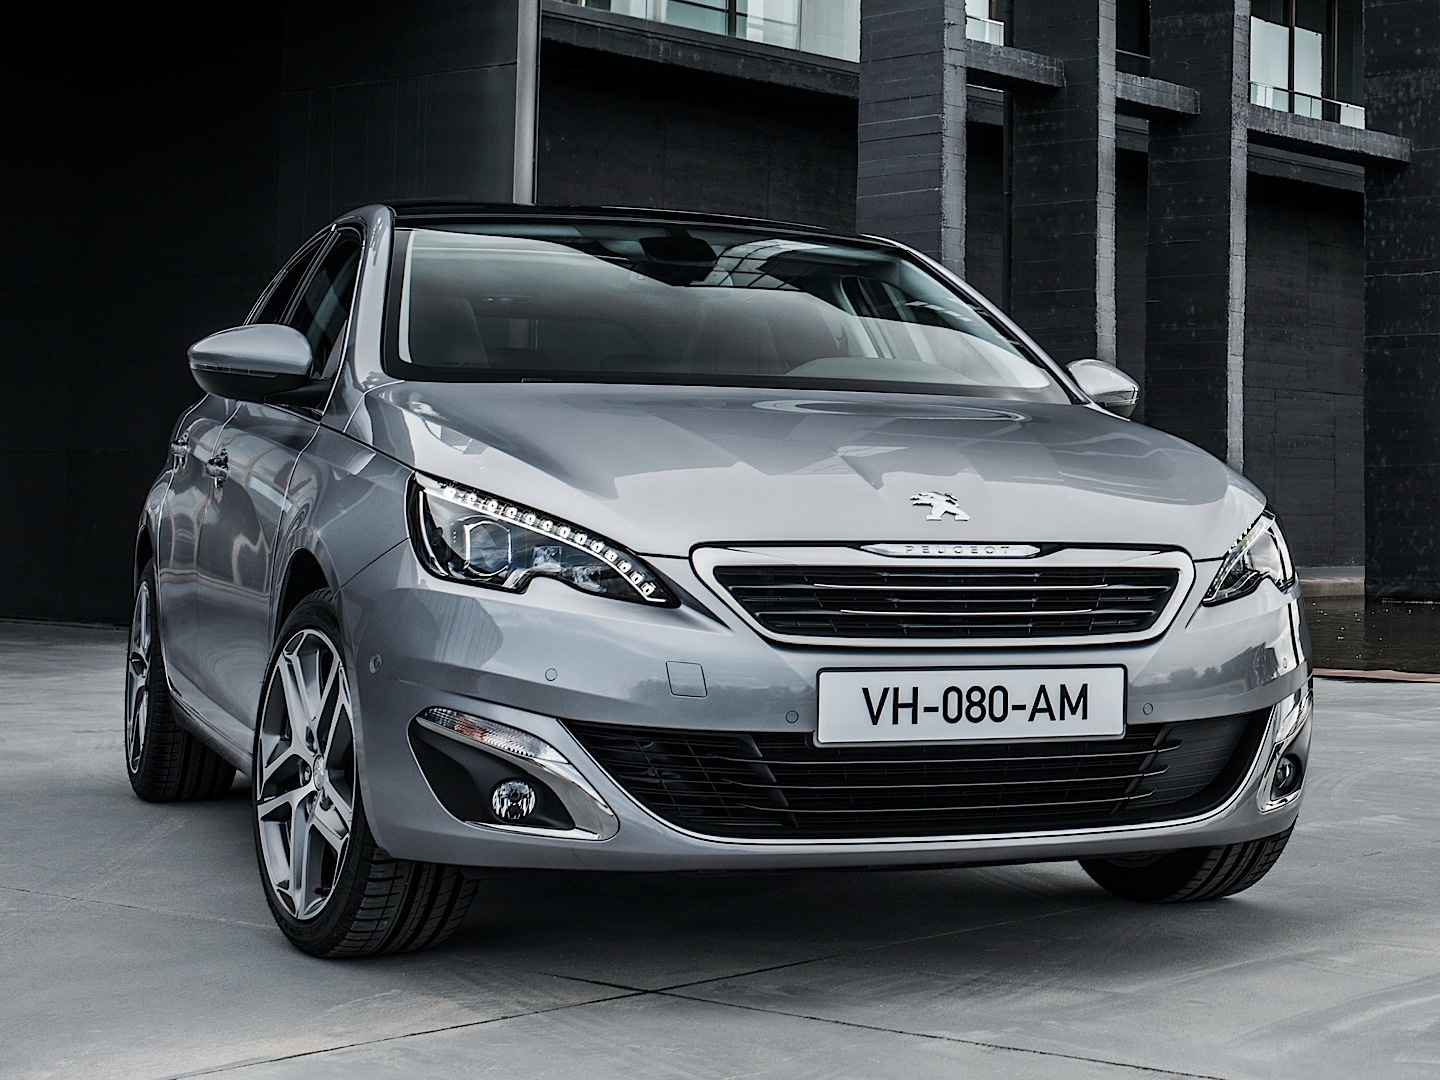 fresh-2014-peugeot-308-photos-leaked-shed-new-light-on-french-compact-photo-gallery_12.jpg?1377525132